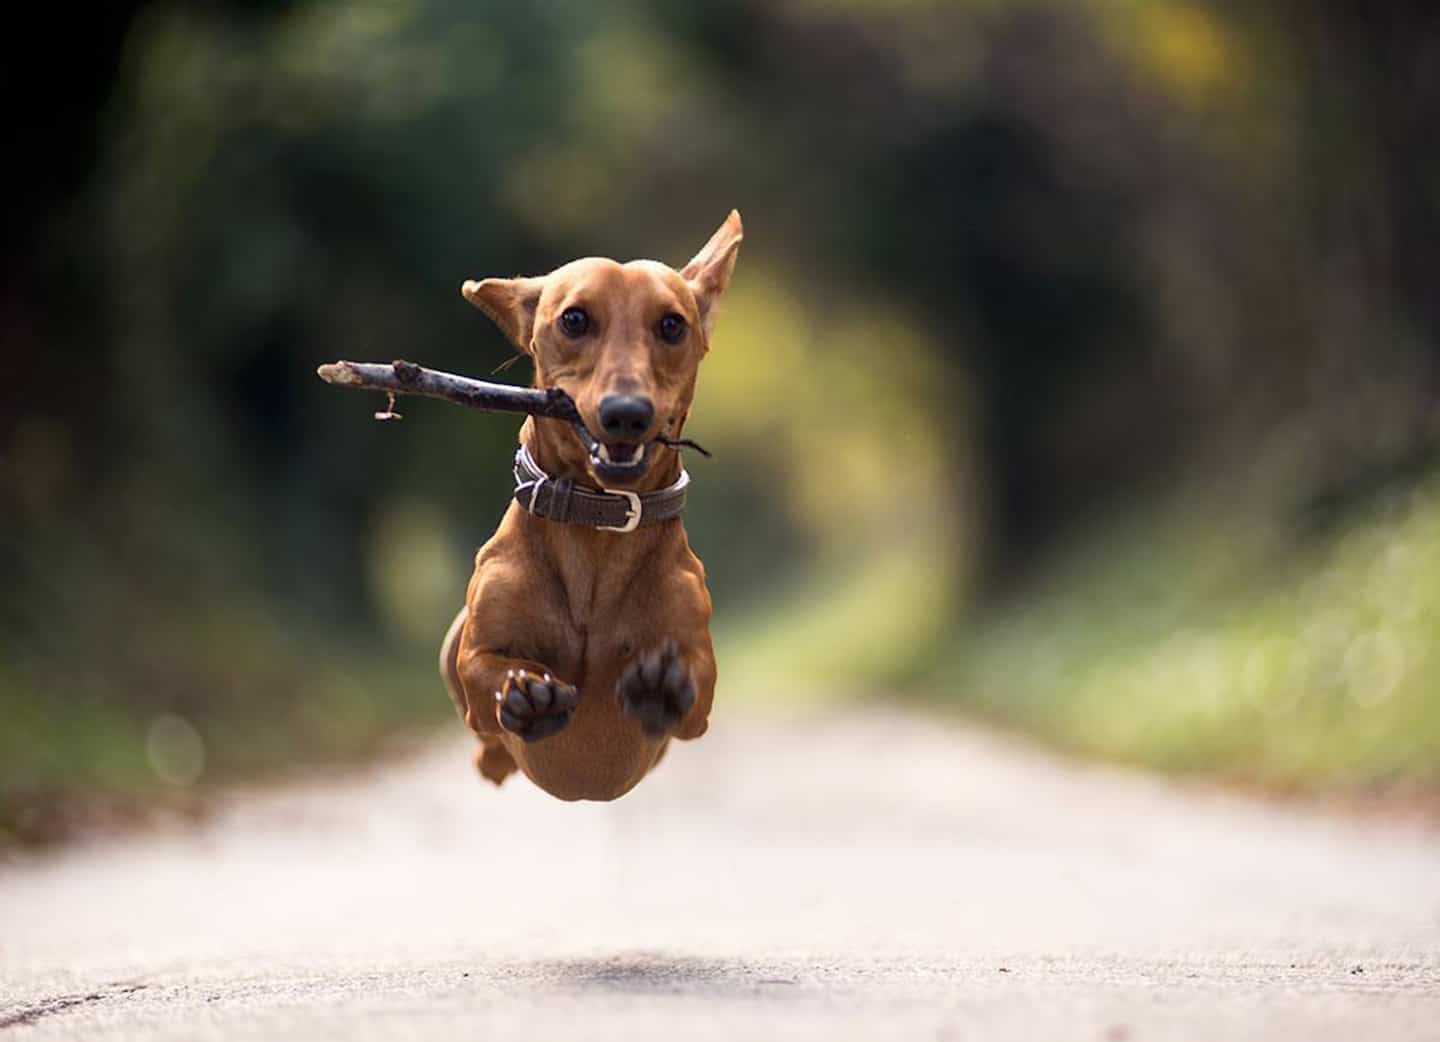 Dog flying through the air having the best time!